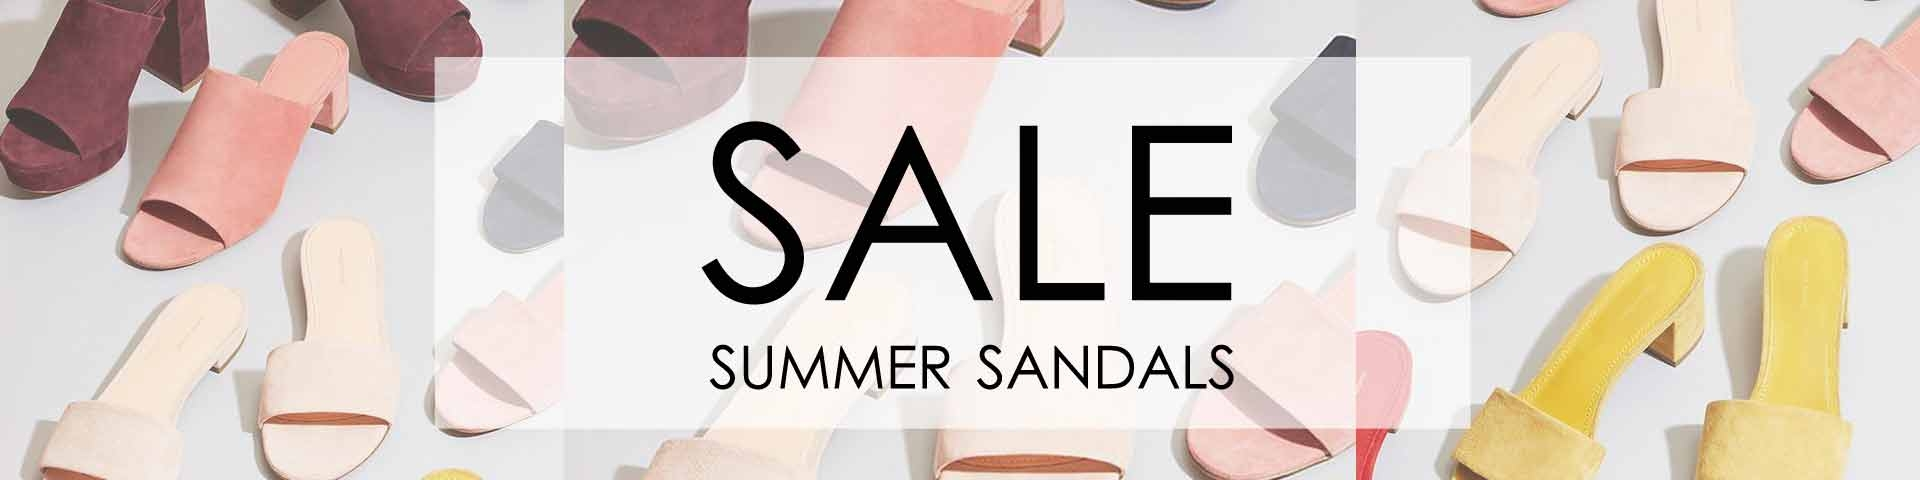 Womens summer sandals leather slides on sale free shipping Australia